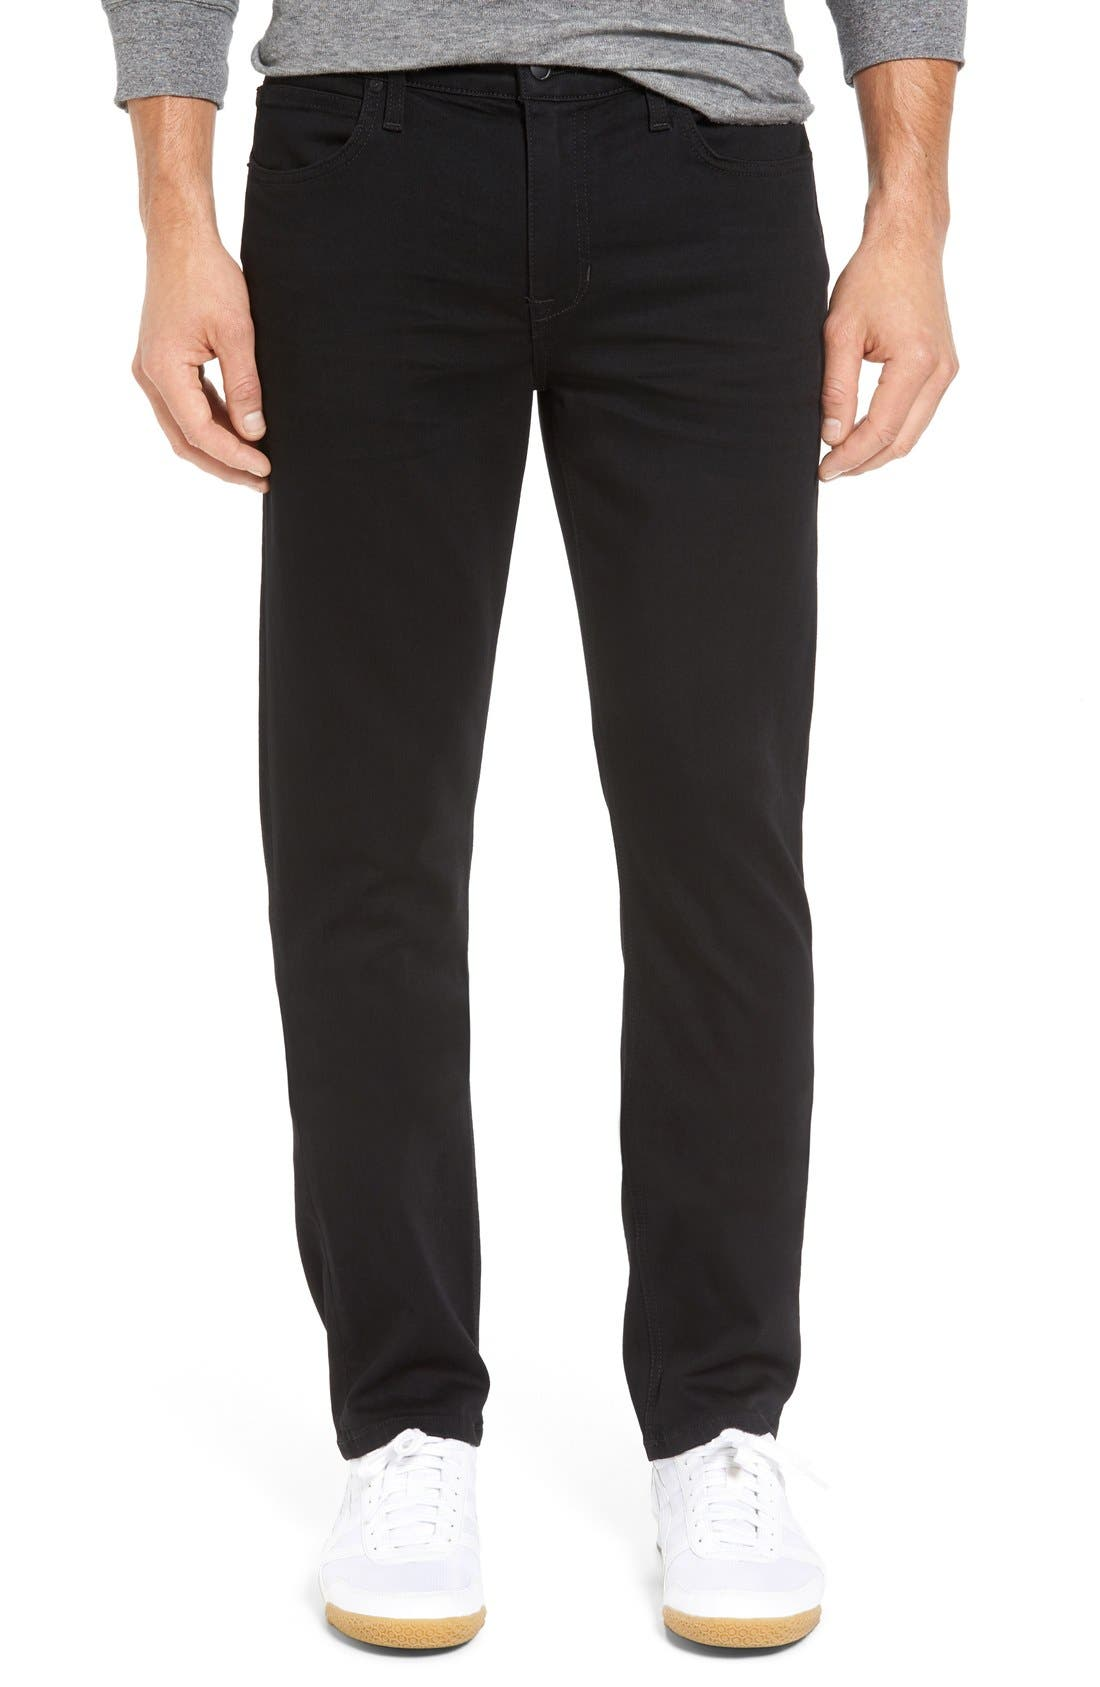 Alternate Image 1 Selected - Joe's Brixton Kinetic Slim Straight Fit Jeans (Griffith)